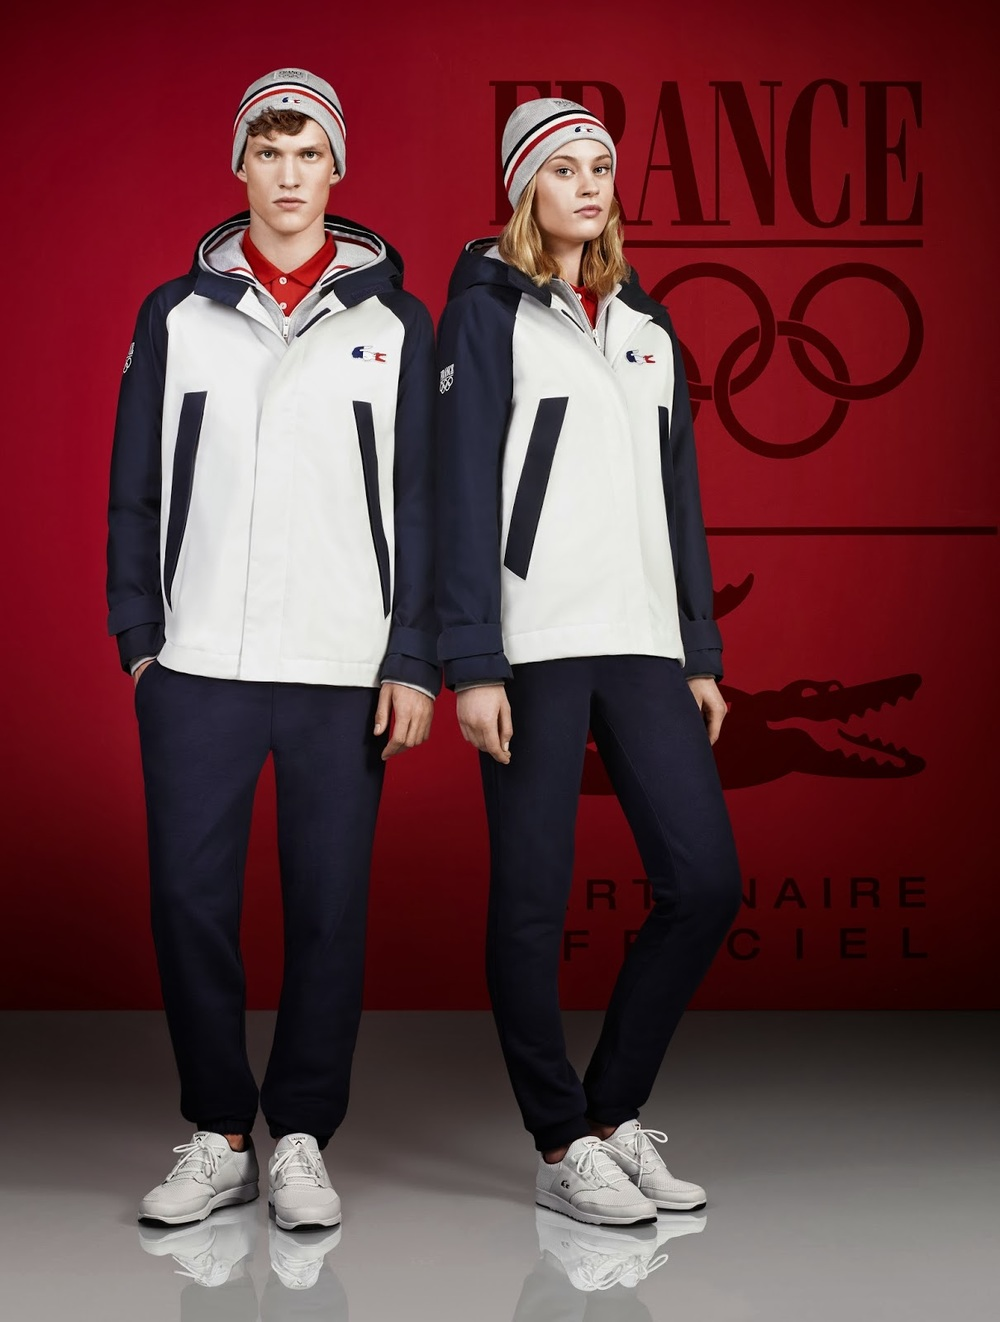 006_LACOSTE_Official_Outfitter_for_the_French_Olympic_Team_-_Sochi_2014_village_outfits.jpg